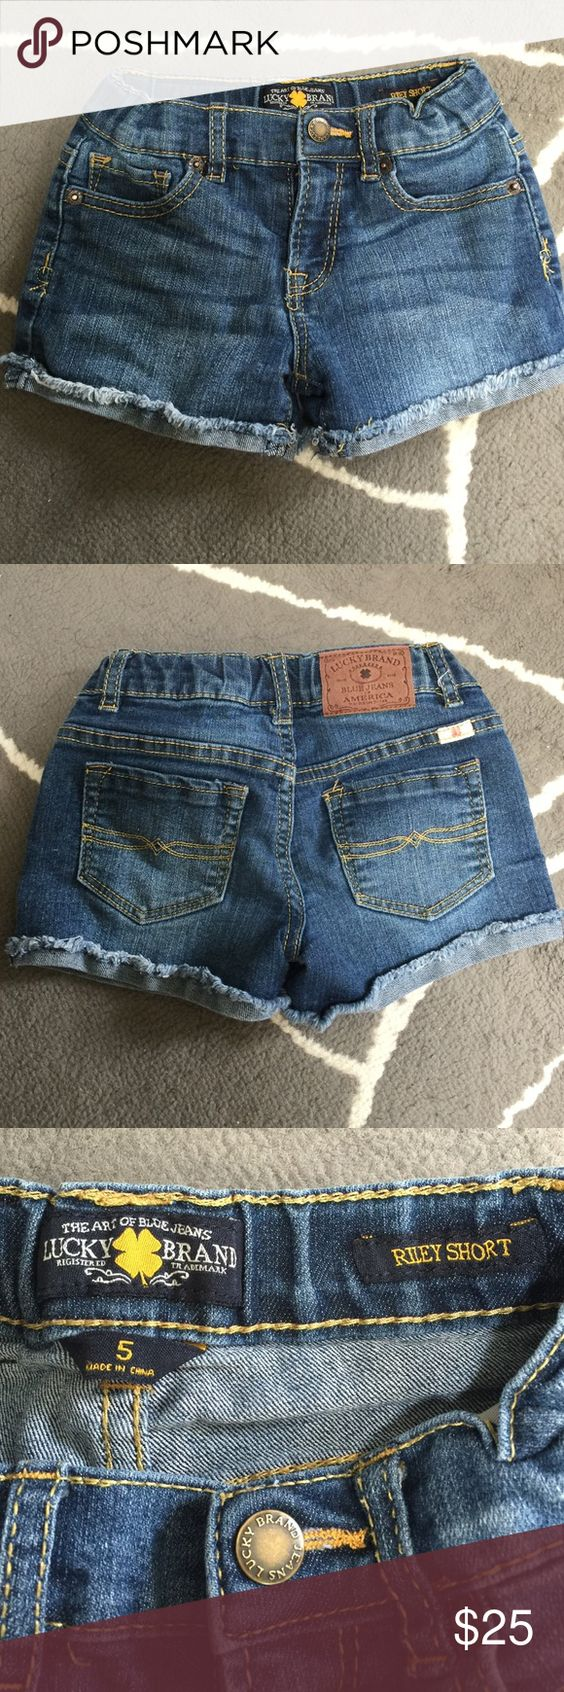 LUCKY Kids Jean Shorts Kids Jean shorts size 5. Gently worn. No rips, holes, stains. Pet/Smoke free home. No Trades Lucky Brand Bottoms Shorts